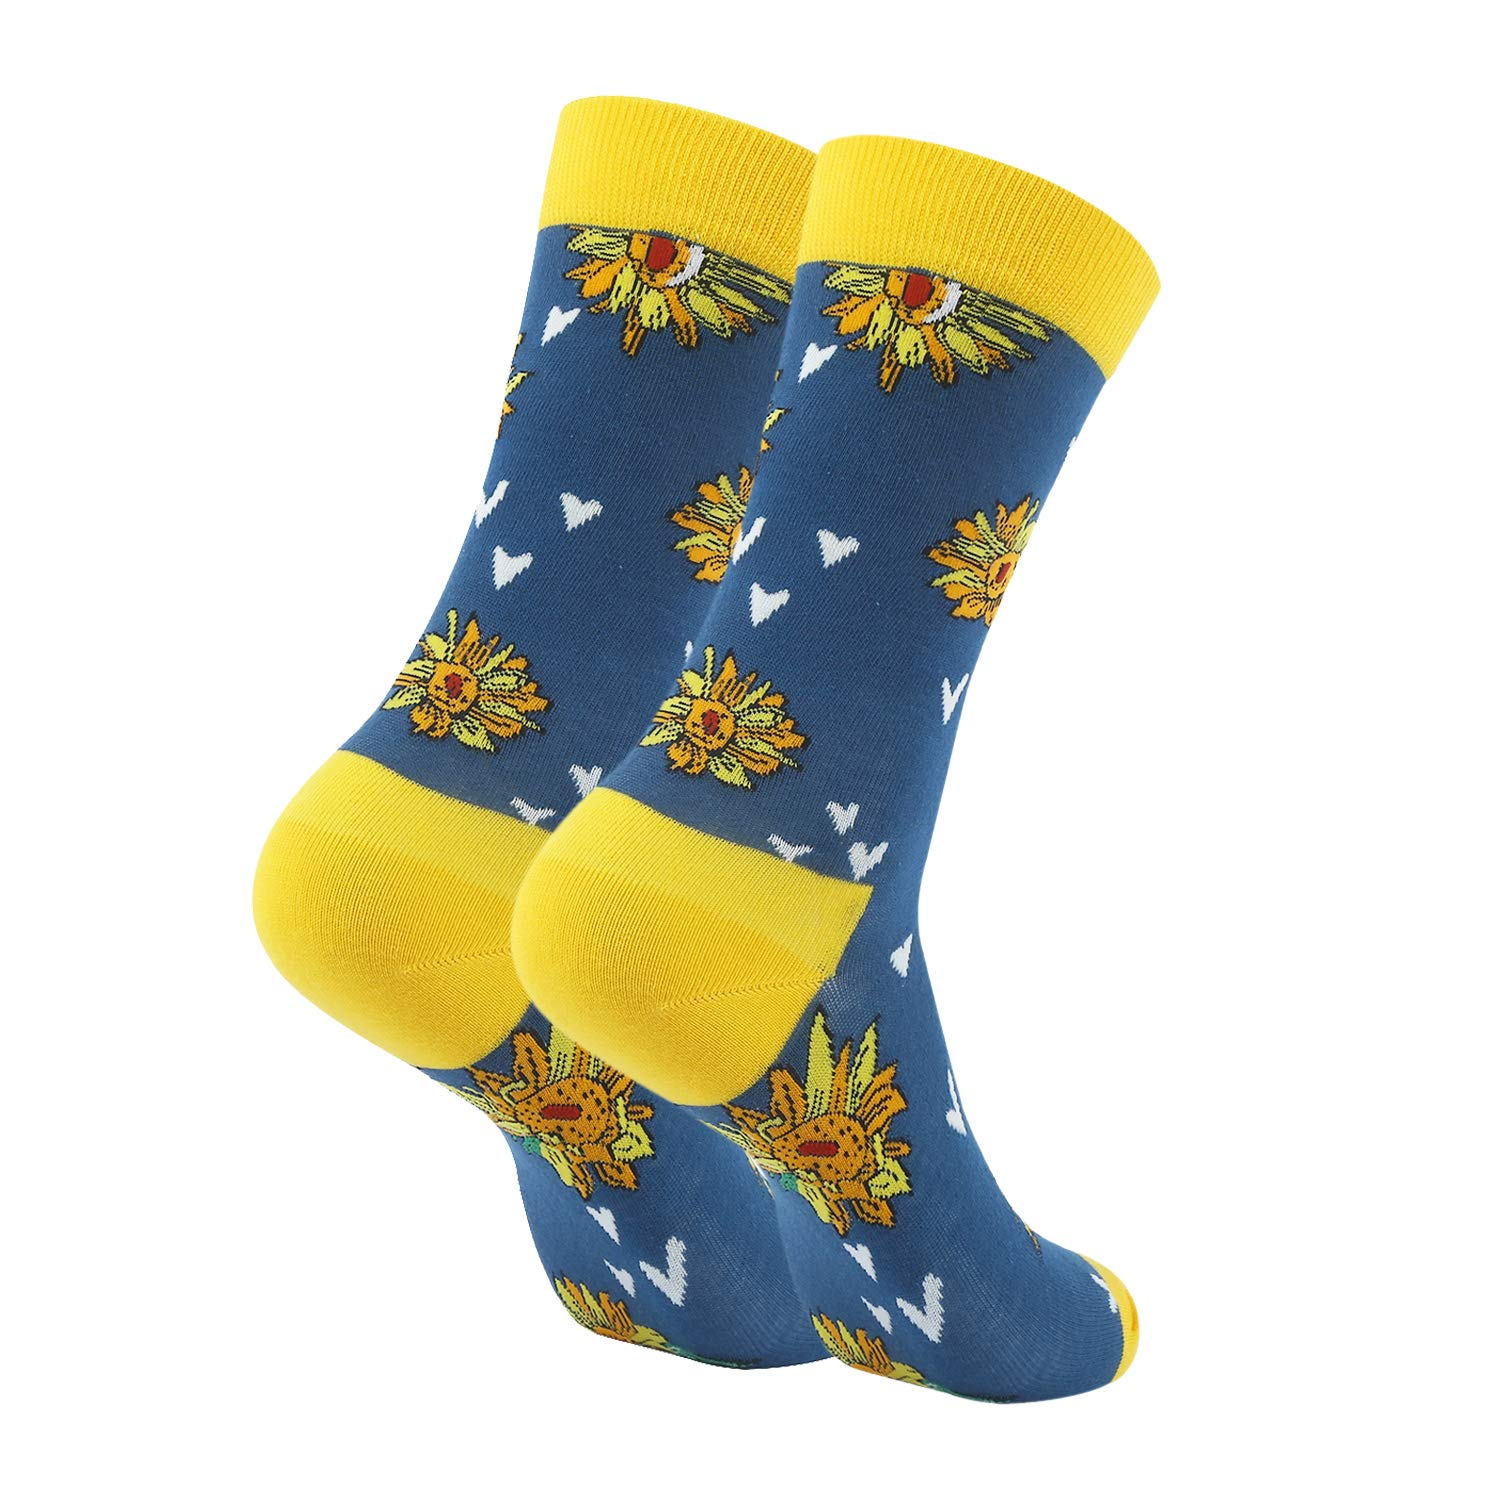 Womens Novelty Sunflower Crew Socks Colorful Flowers Funky Patterned Casual Dress Socks